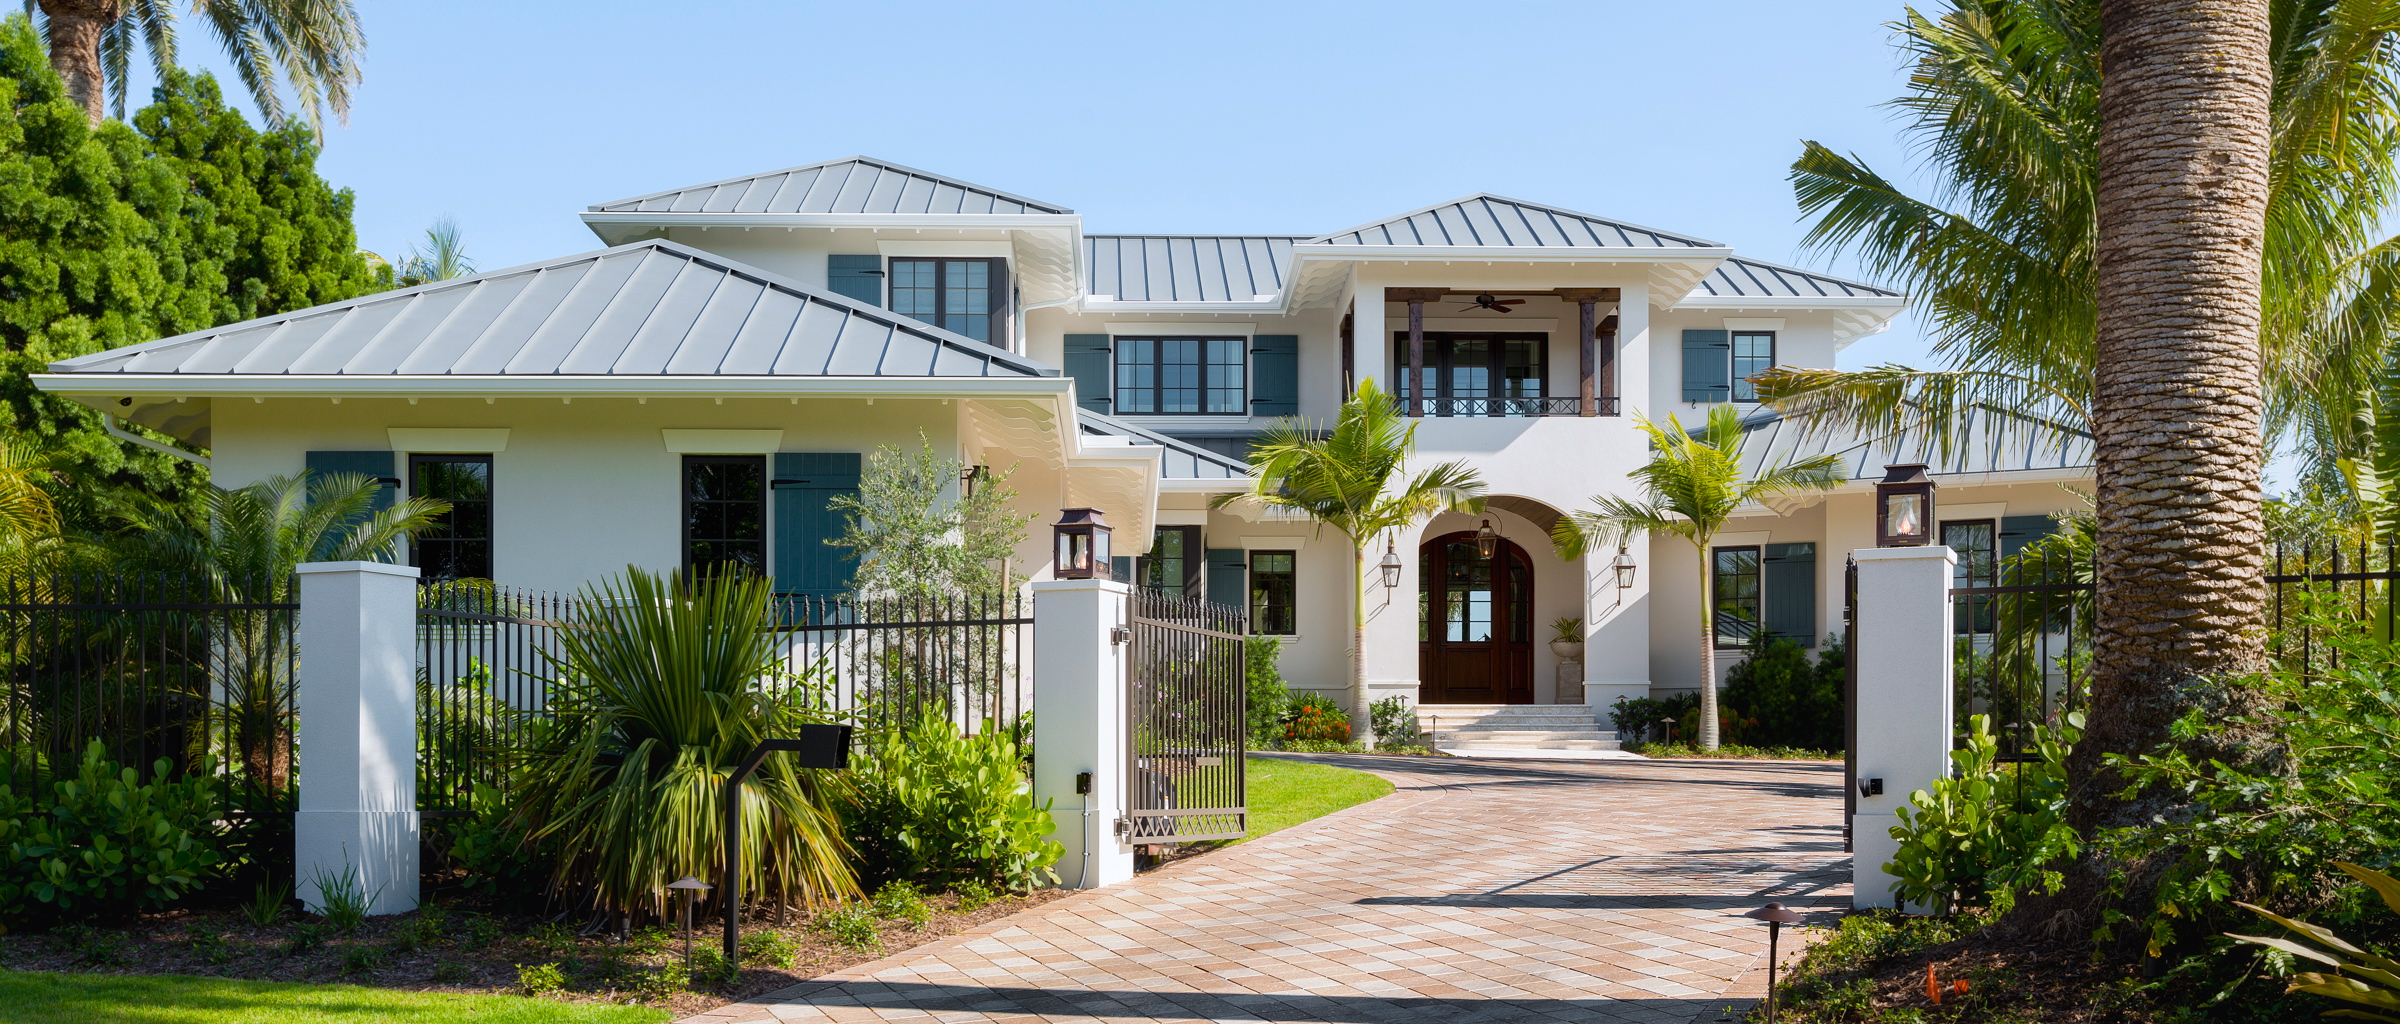 Two-story coastal luxury home